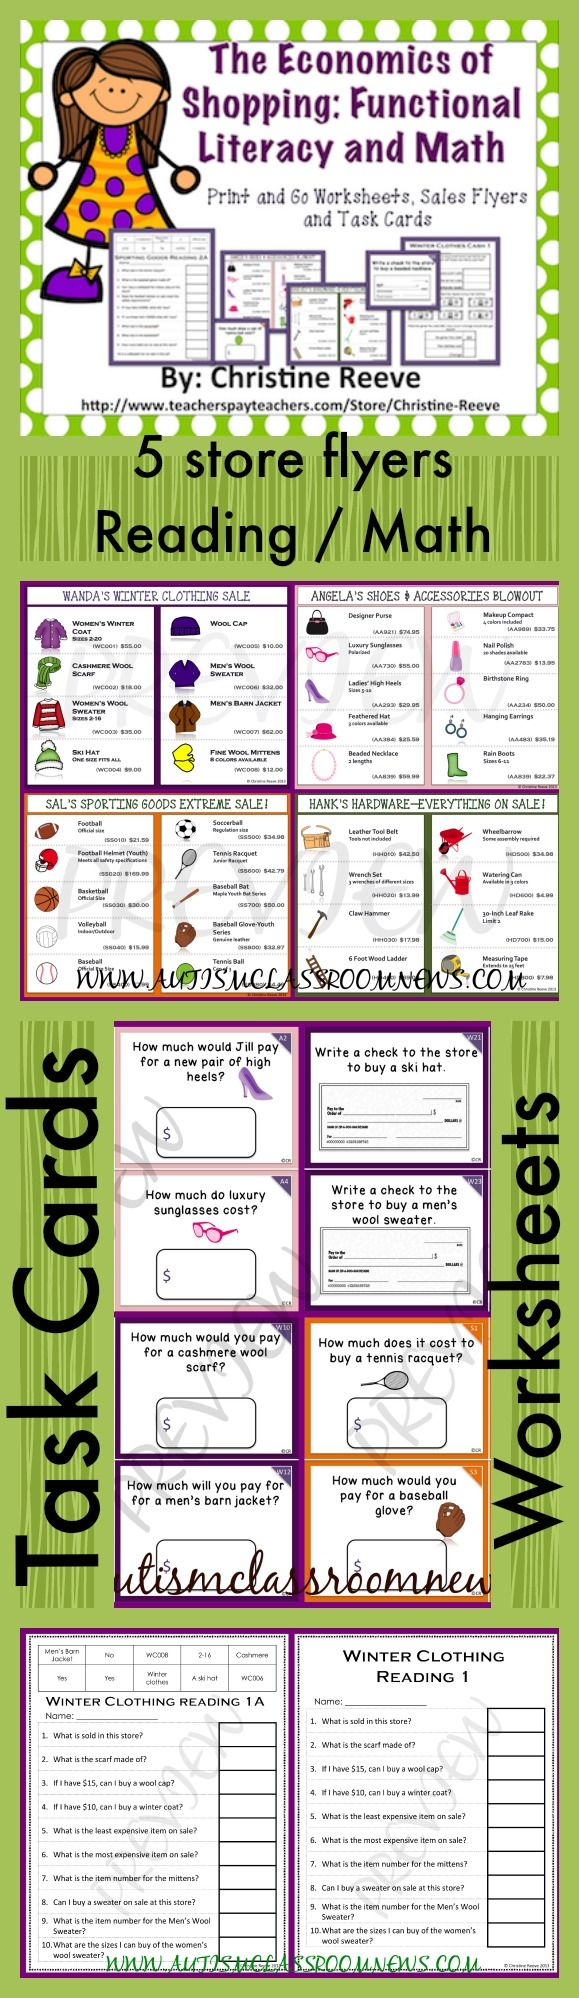 This is an easy print-and-go set of math / shopping activities for students working on money skills in elementary school or life skills classes. Put the sales flyers in a page protector, print out the worksheets, and either cut out the task cards for single use or put them in a photo album or laminate for re-use.